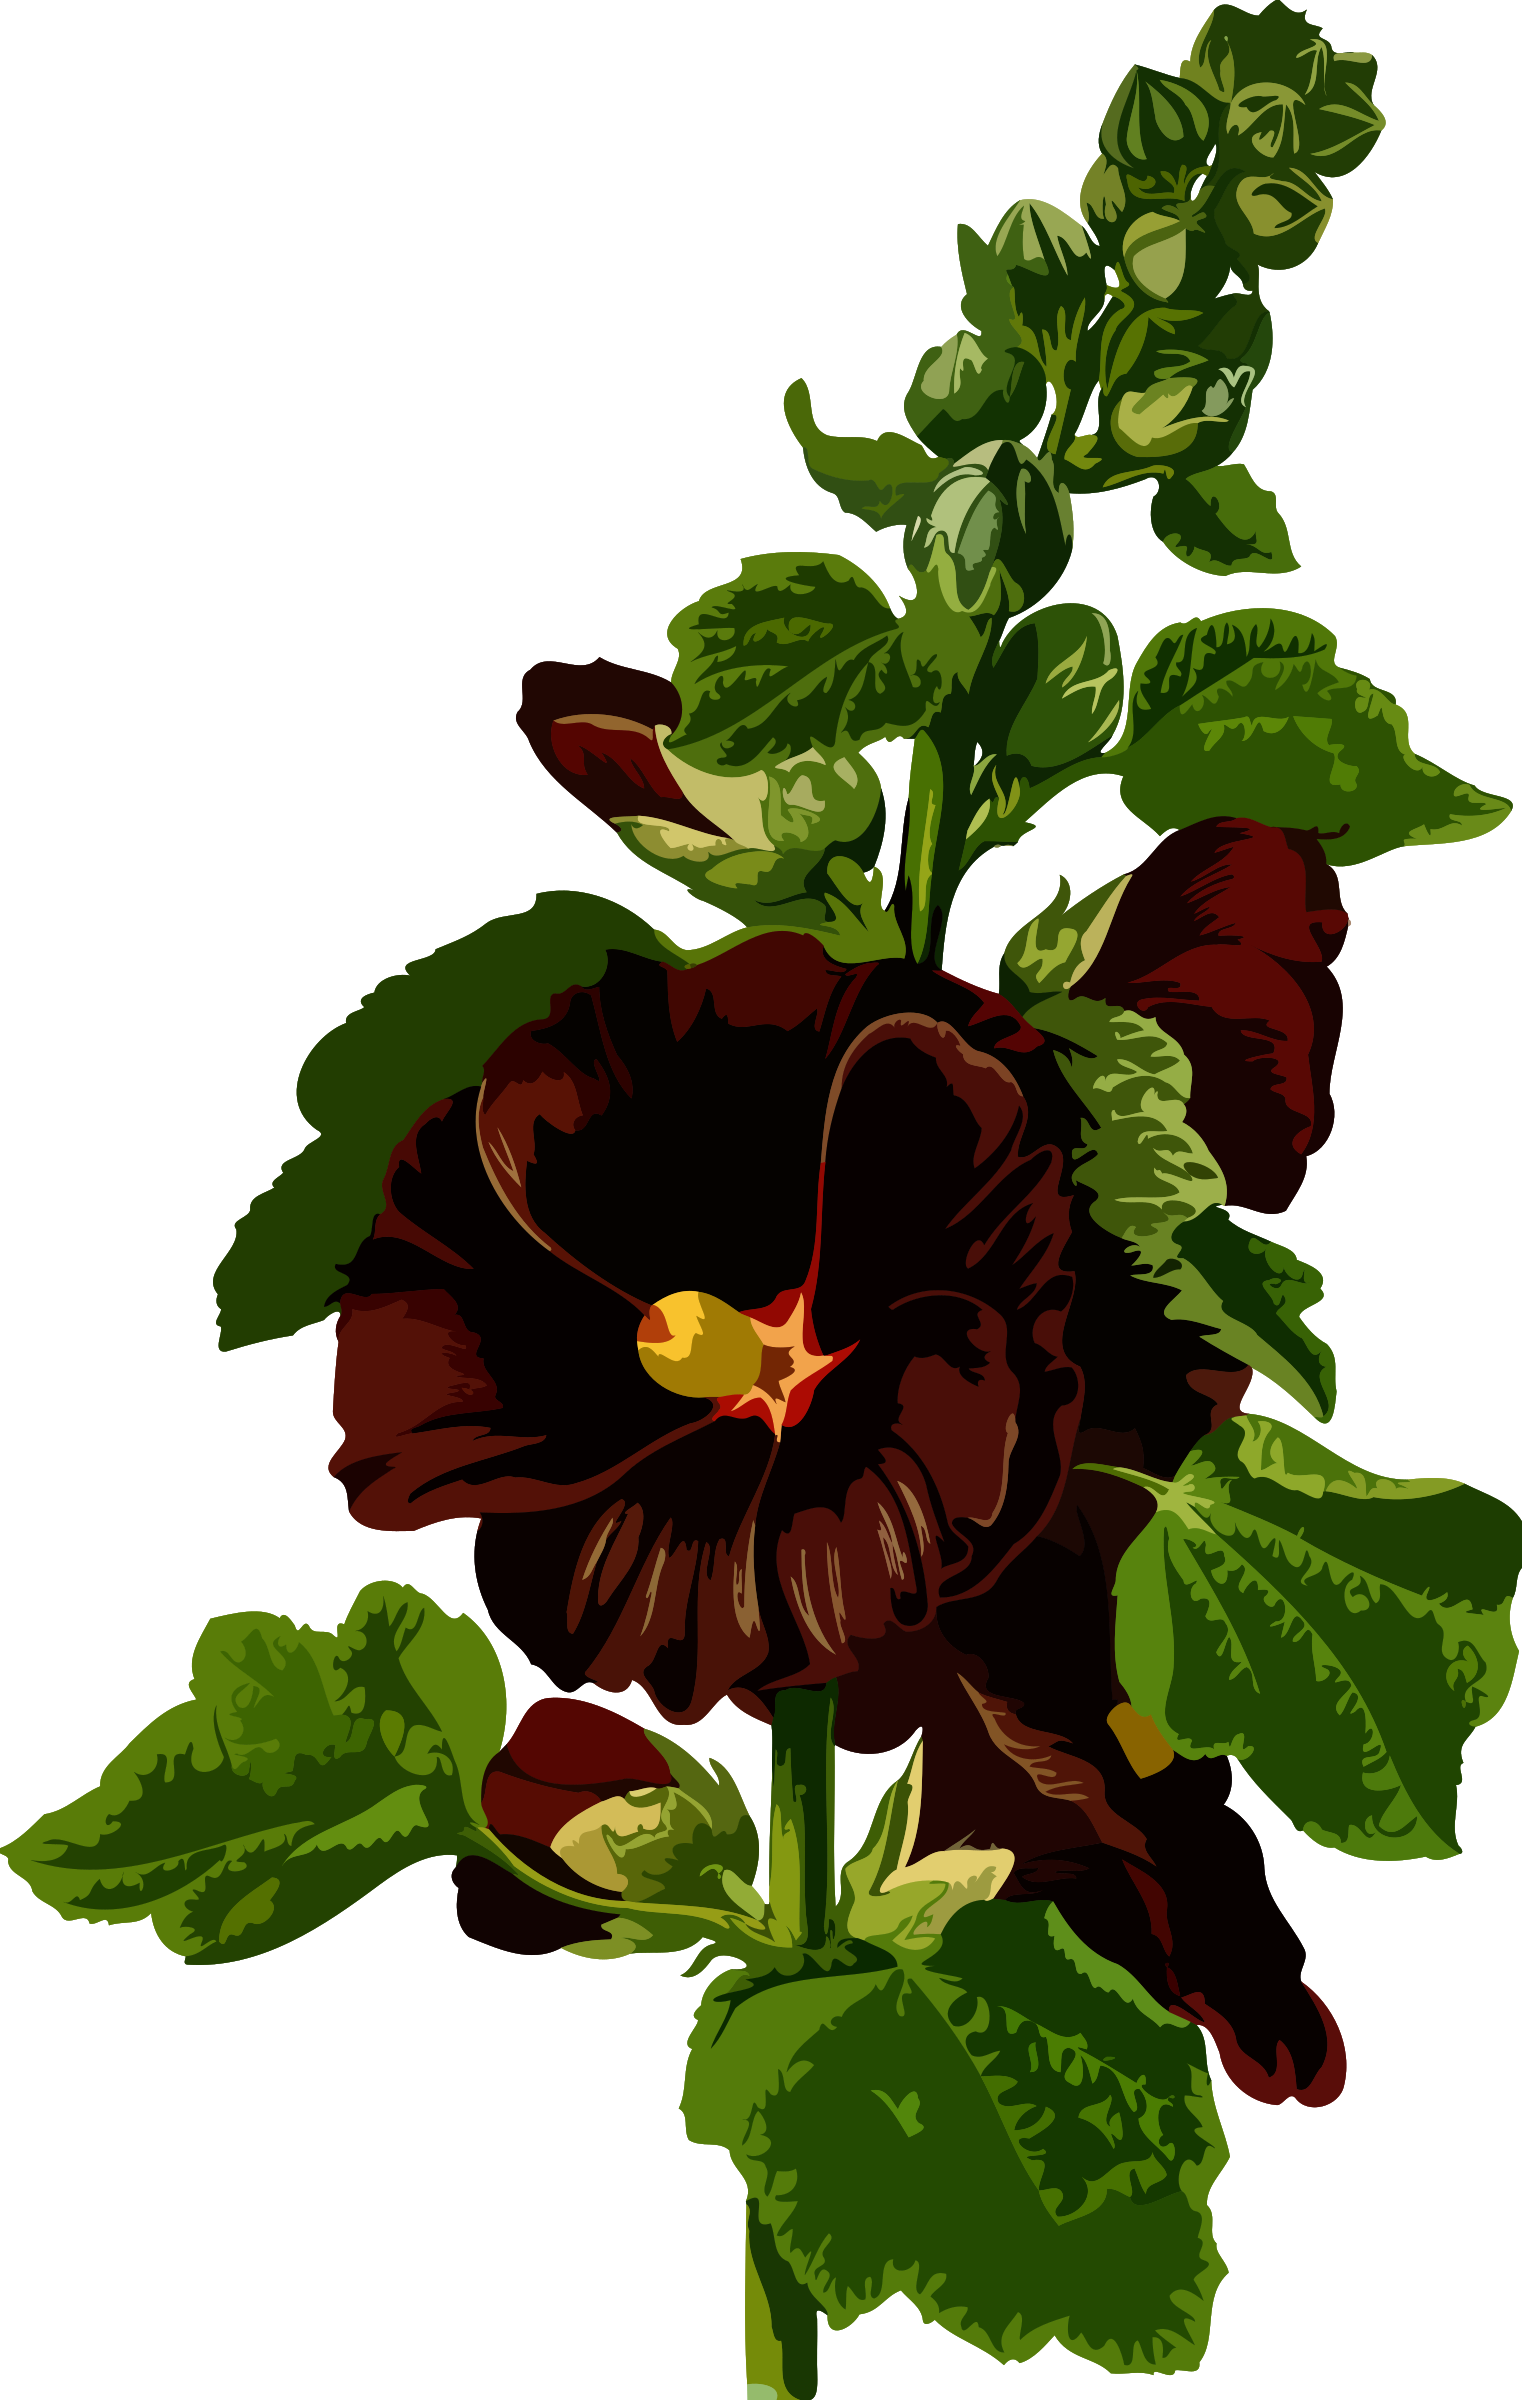 Hollyhock (low resolution) by Firkin